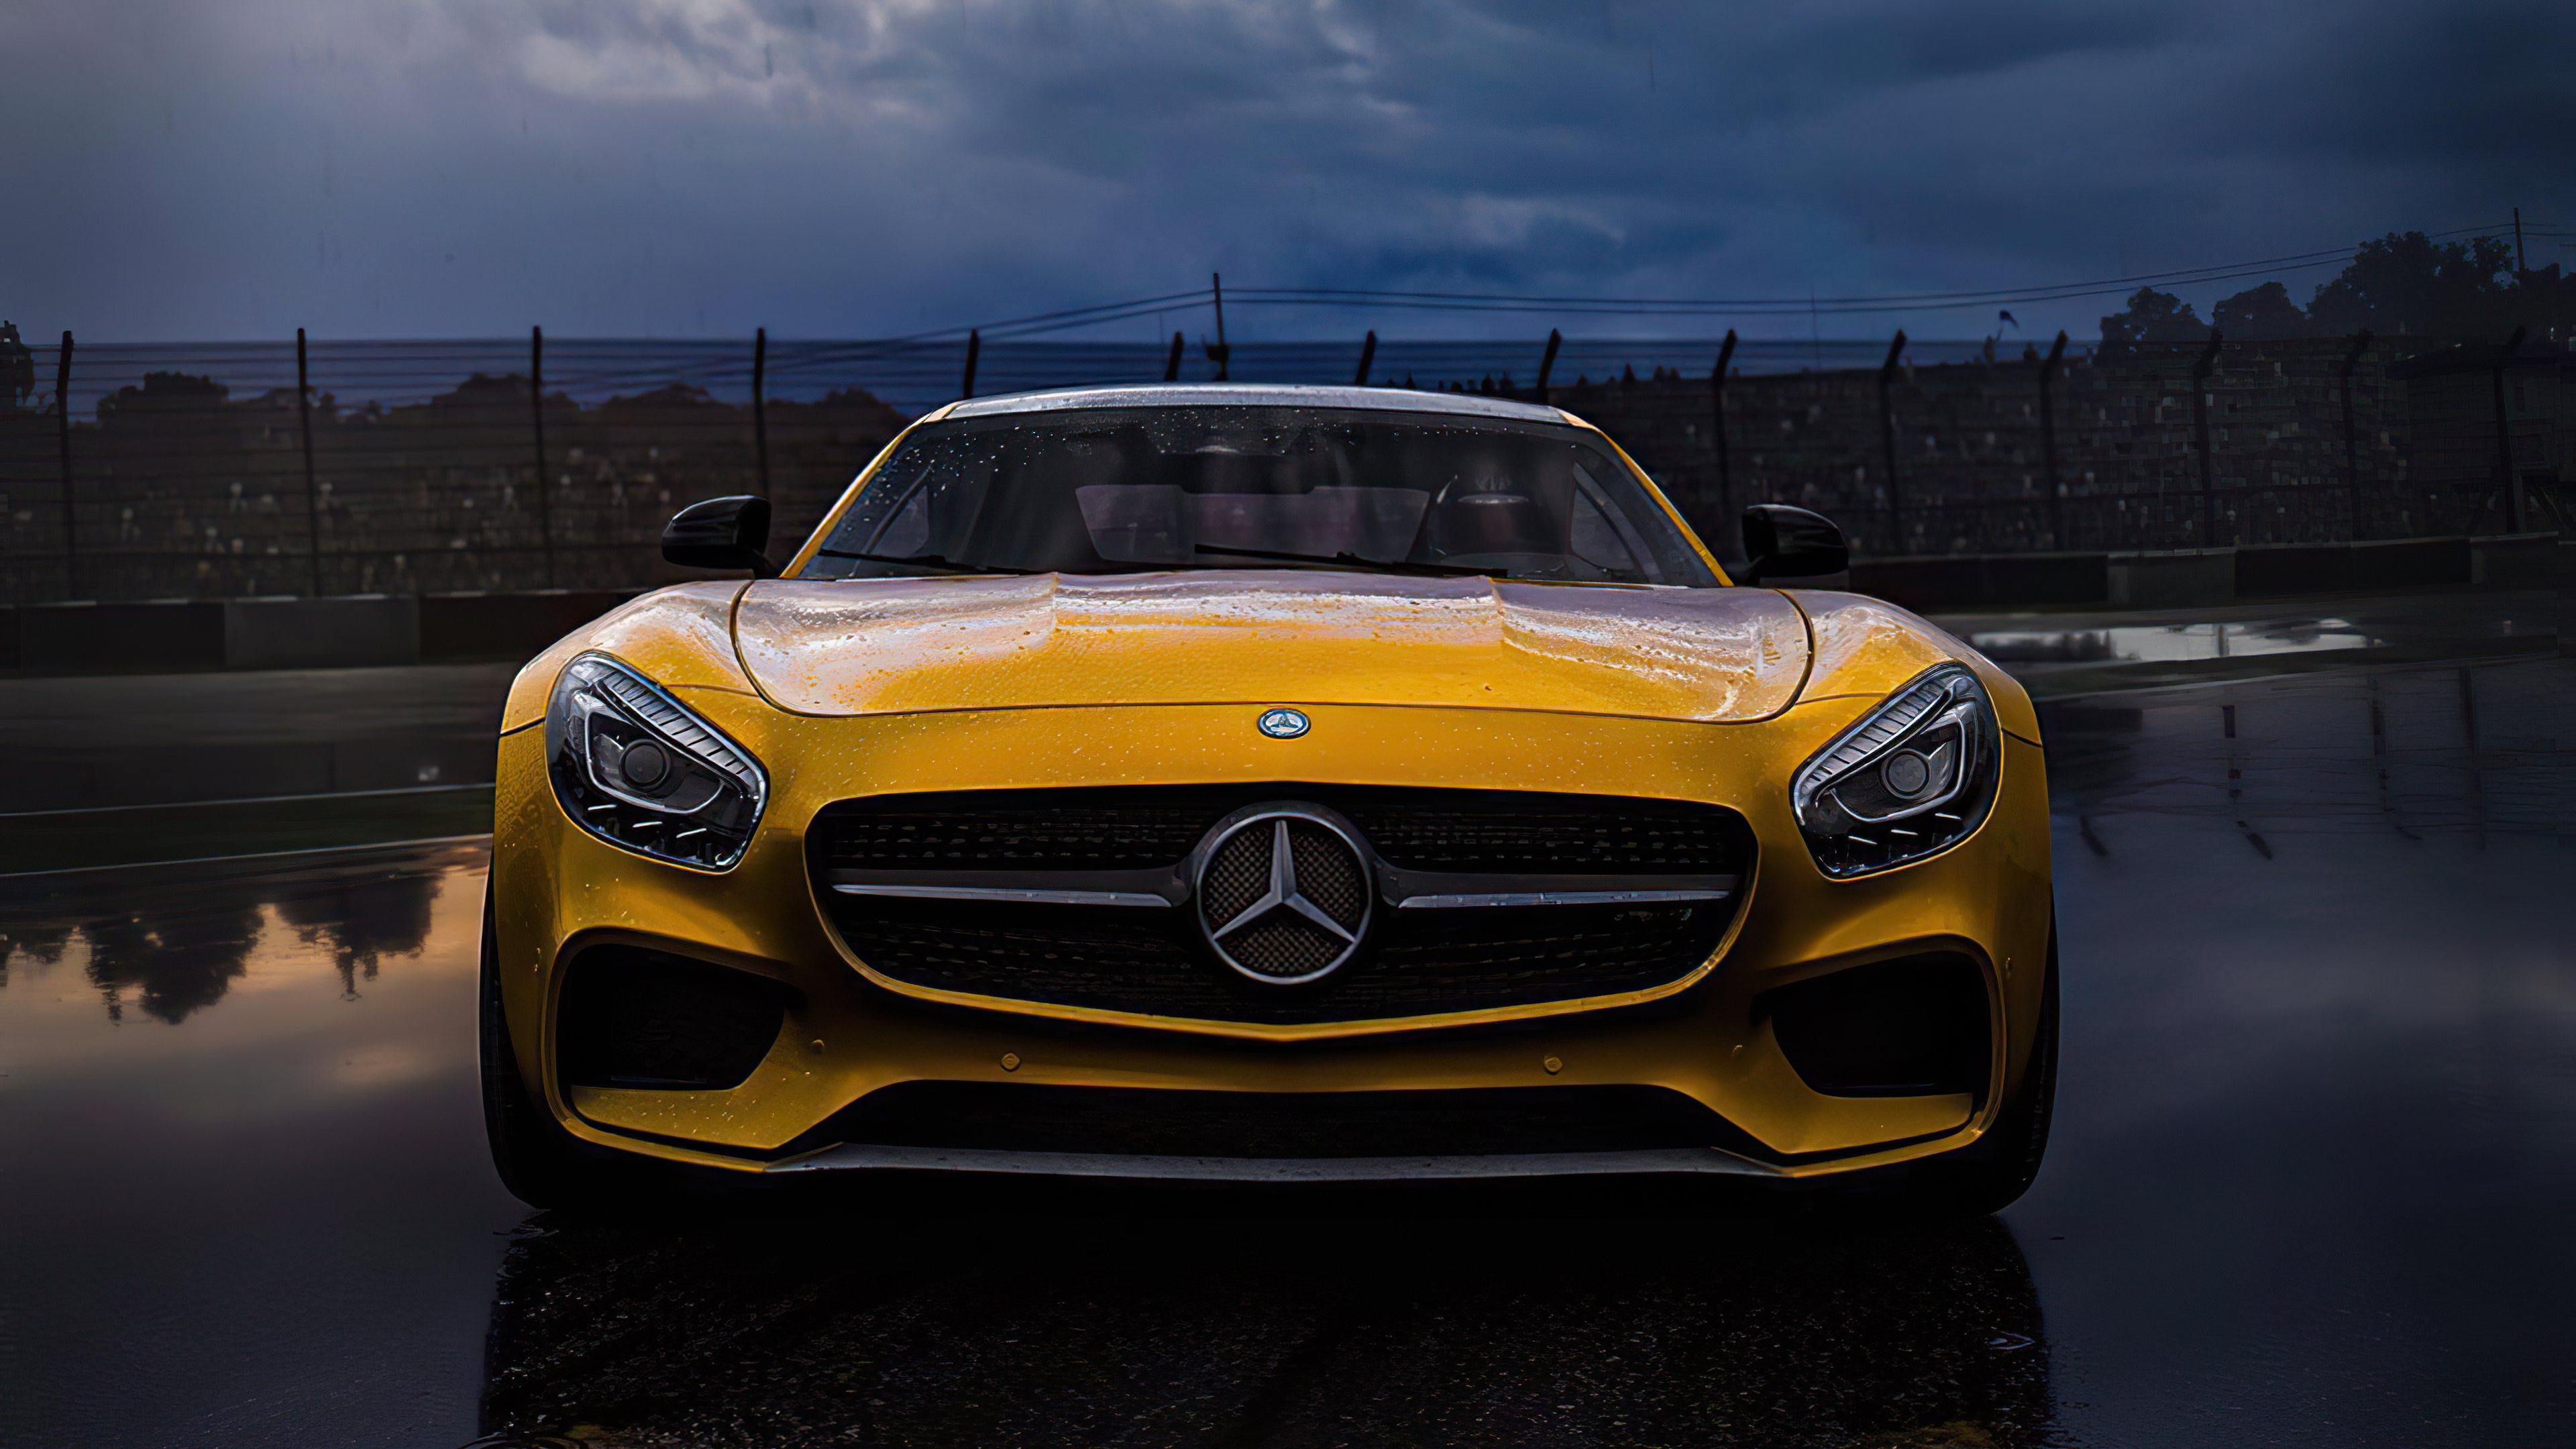 Yellow Mercedes Benz Amg 2020 4k, HD Cars, 4k Wallpapers ...